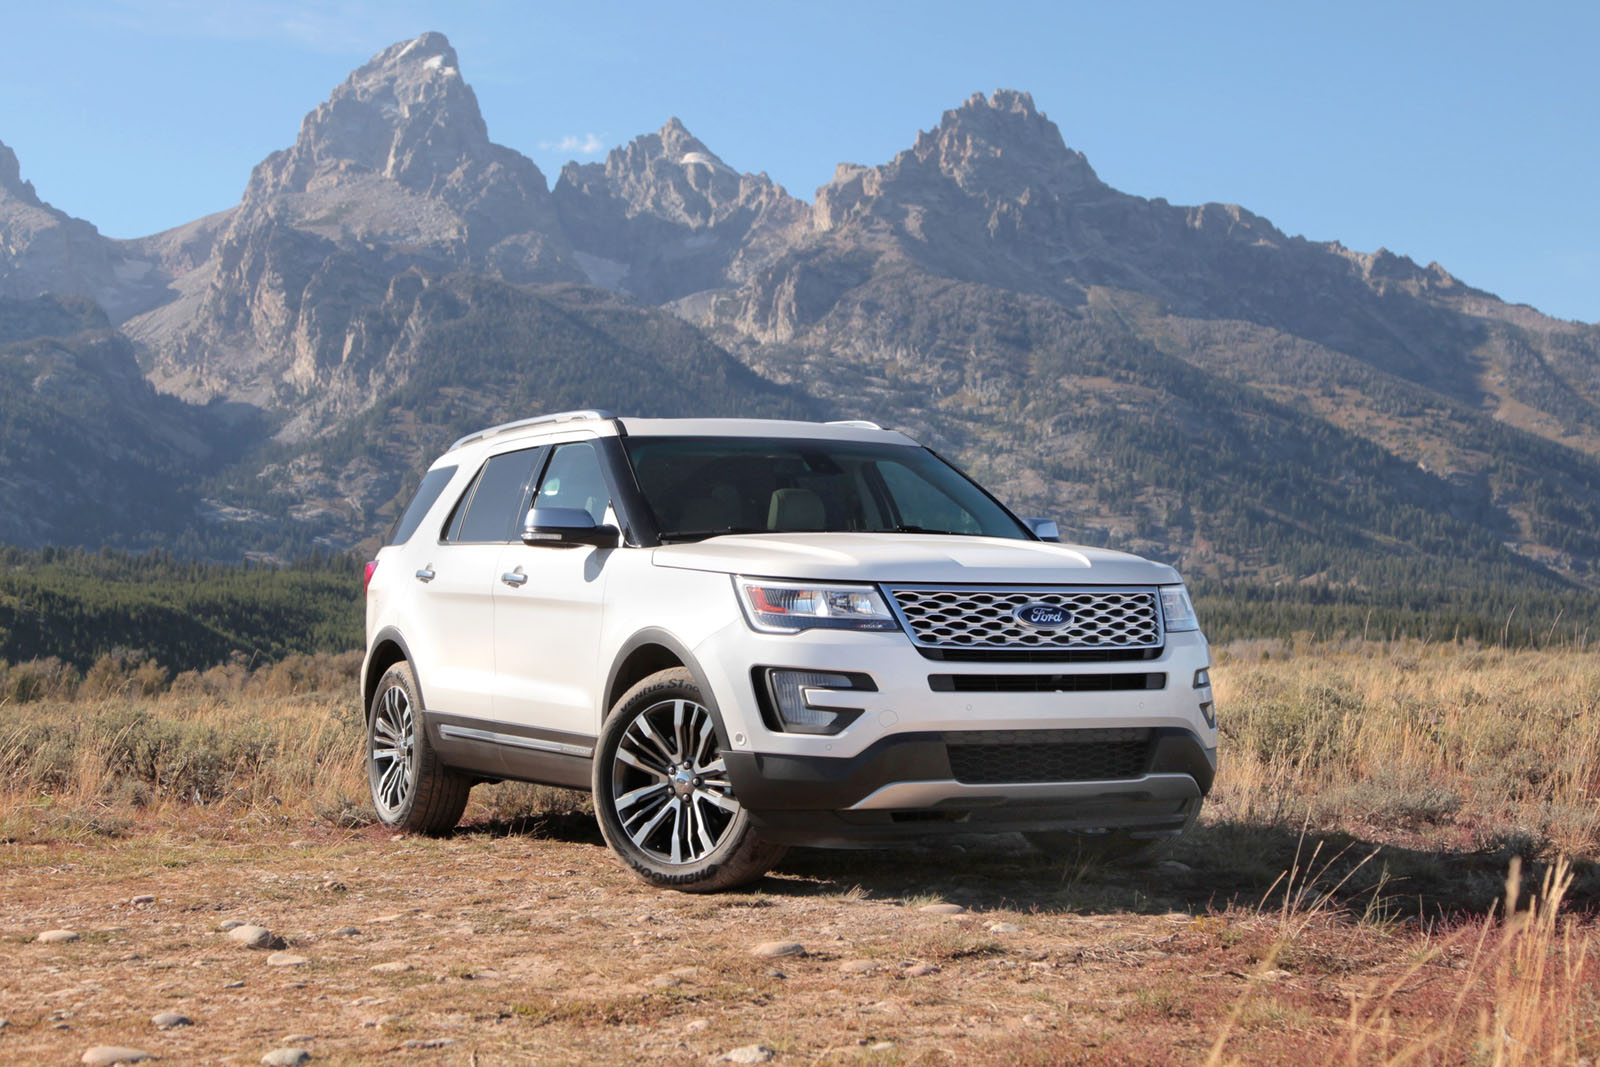 Ford Explorer Platinum 2018 | 2018, 2019, 2020 Ford Cars